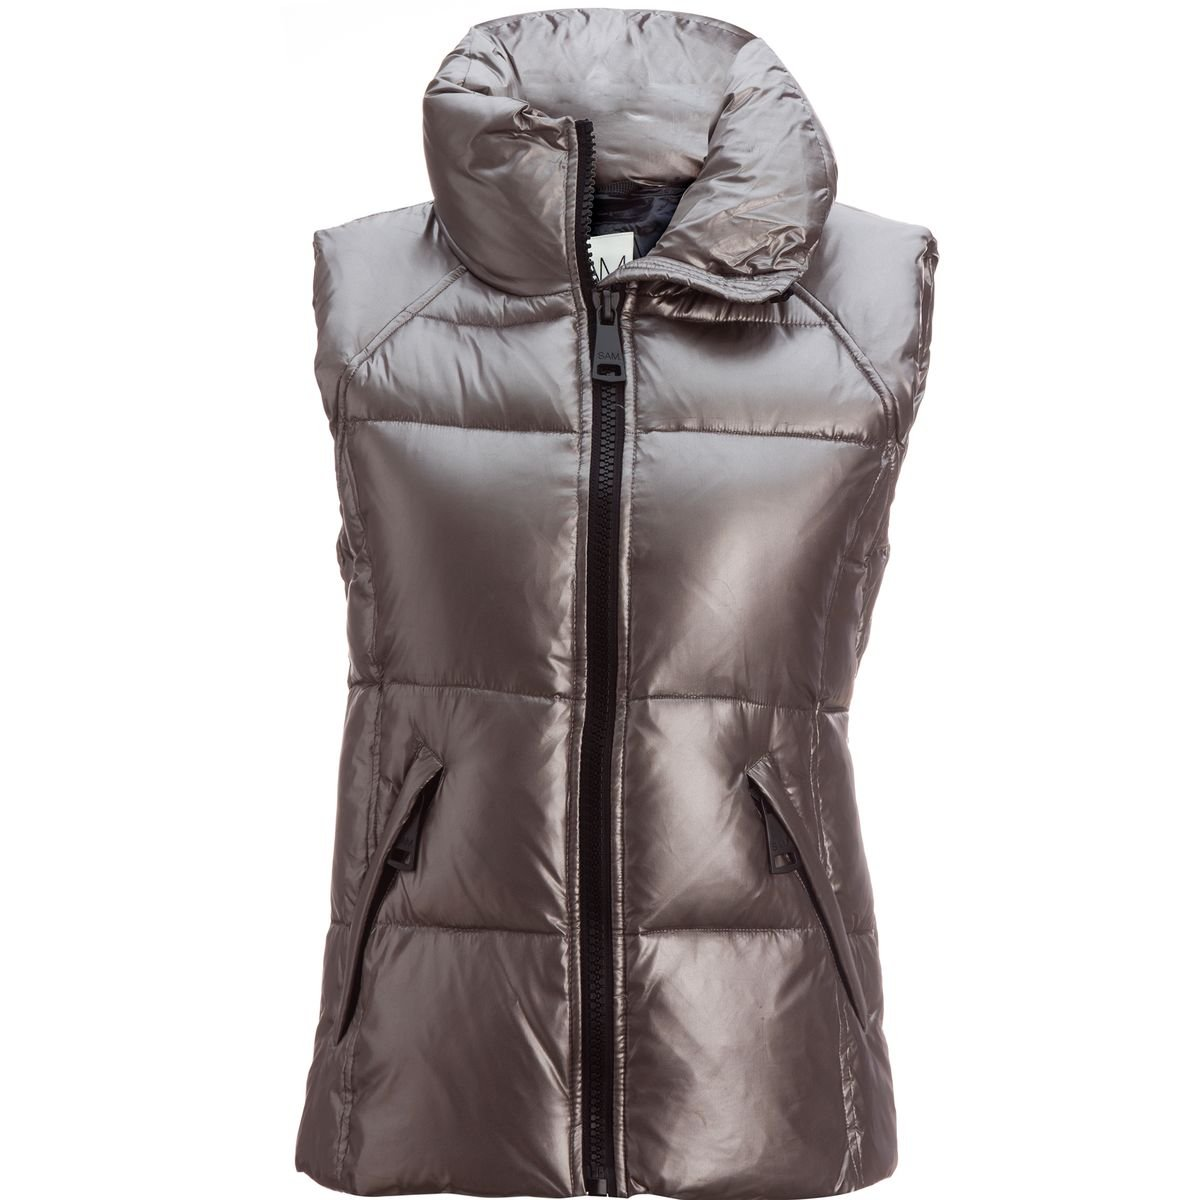 SAM Freedom Vest - Women's Gunmetal, M